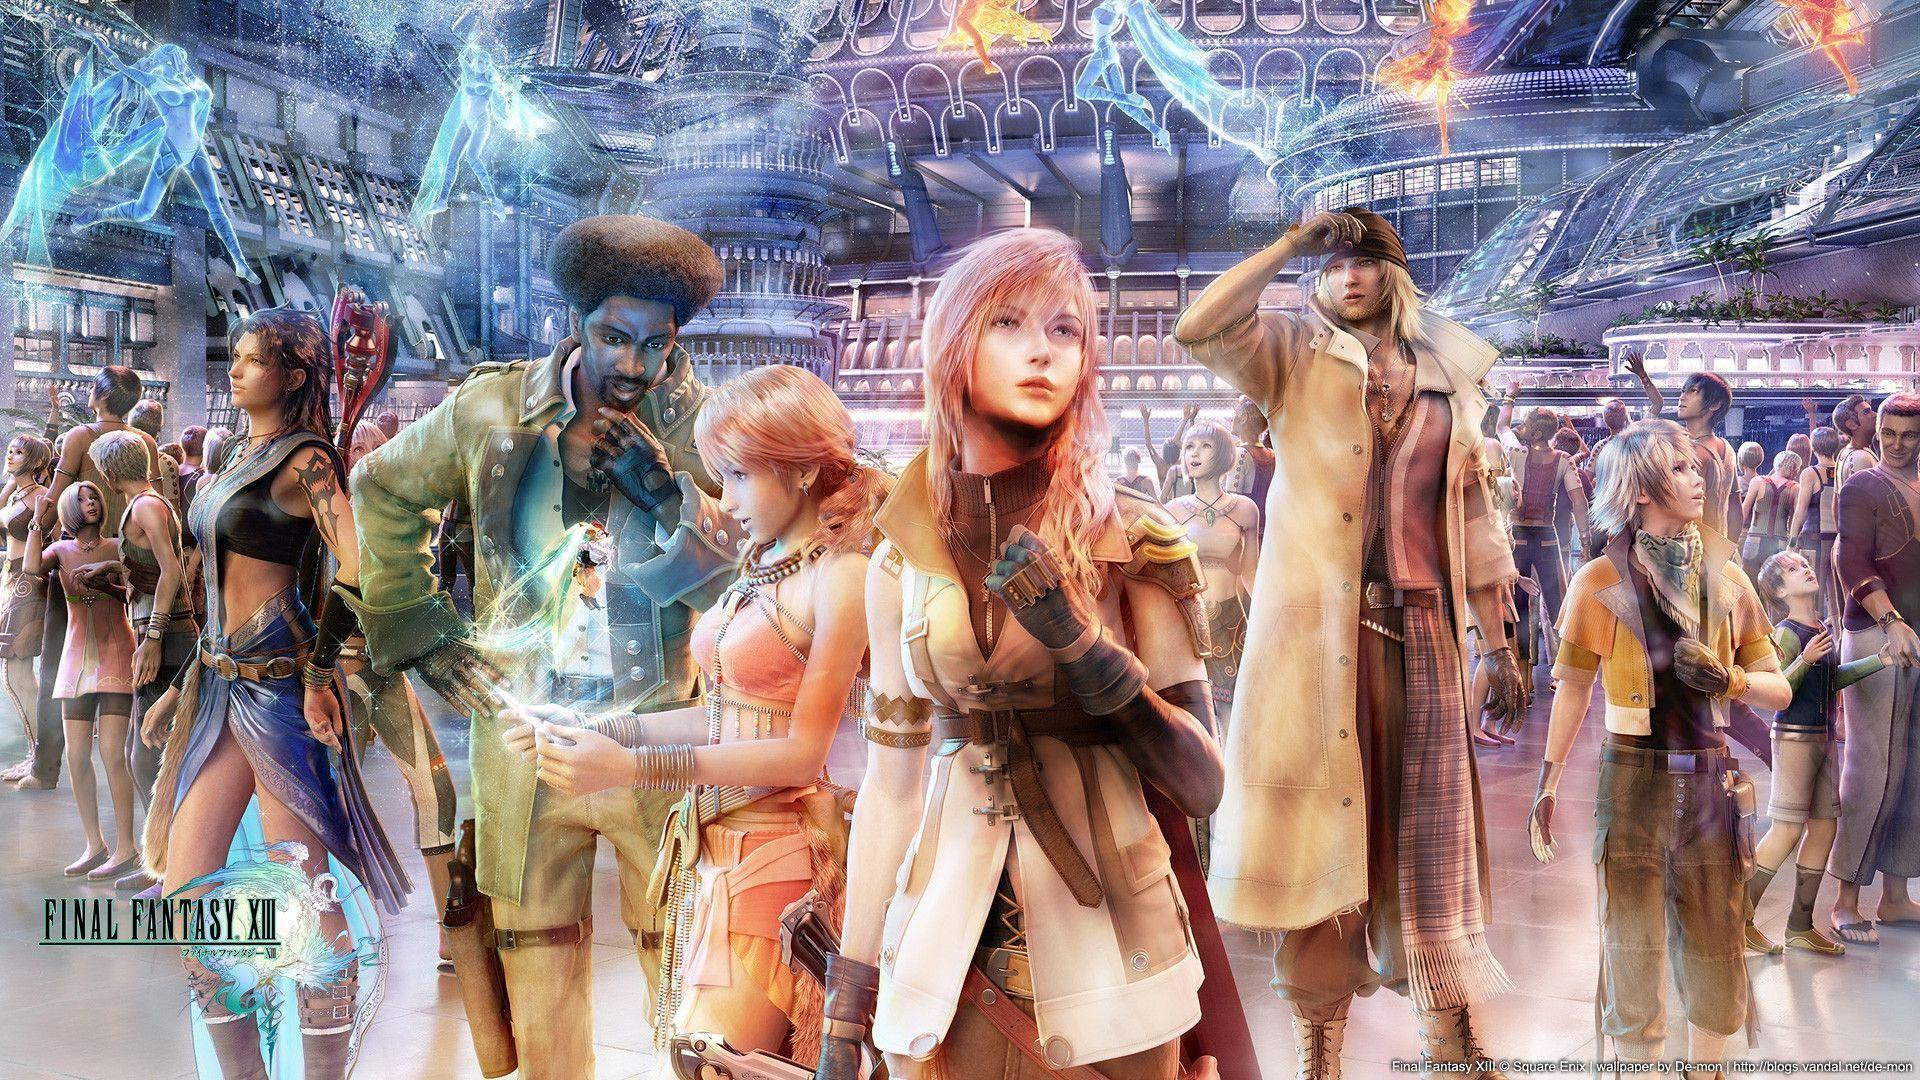 Hd Wallpapers 57 Final Fantasy Xiii Wallpapers Hd Wallpapers Car Pictures